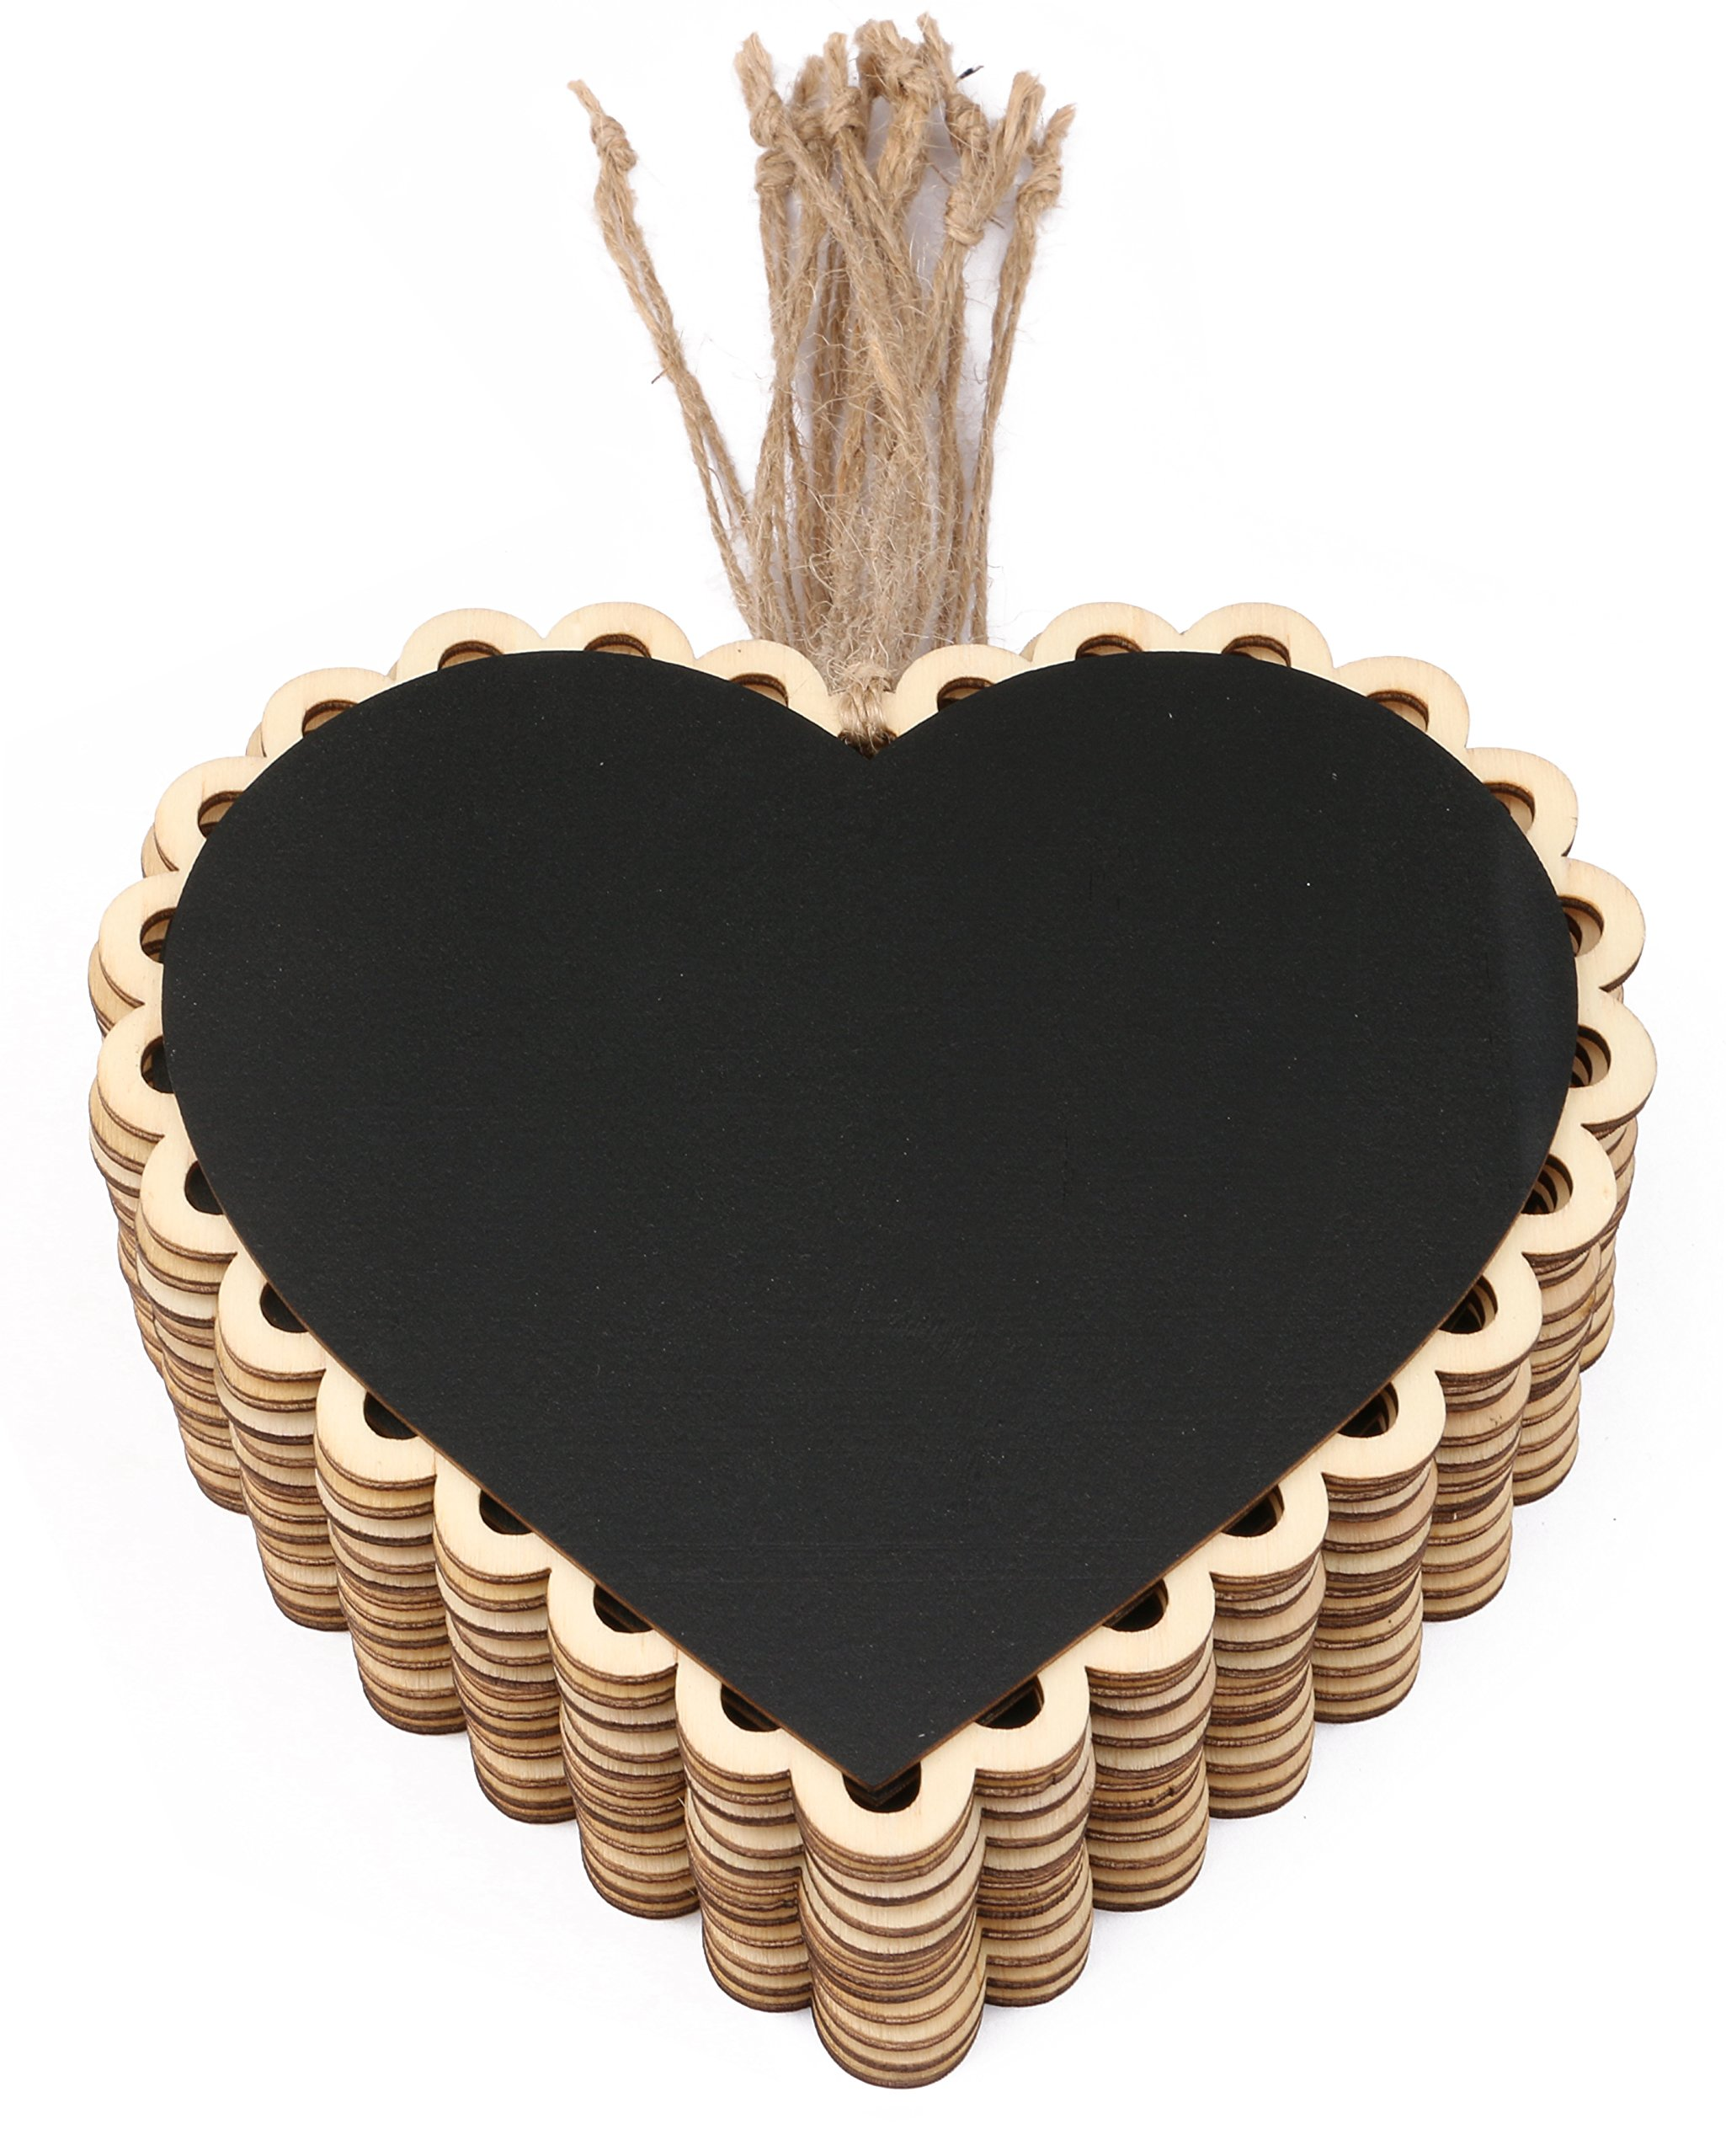 Dedoot 12pcs Hanging Chalkboard Signs Mini Chalkboard Signs with Decorative Boarder - Decorative Chalkboards Heart Message Board for Walls, Wedding, Parties, Kitchen Decoration